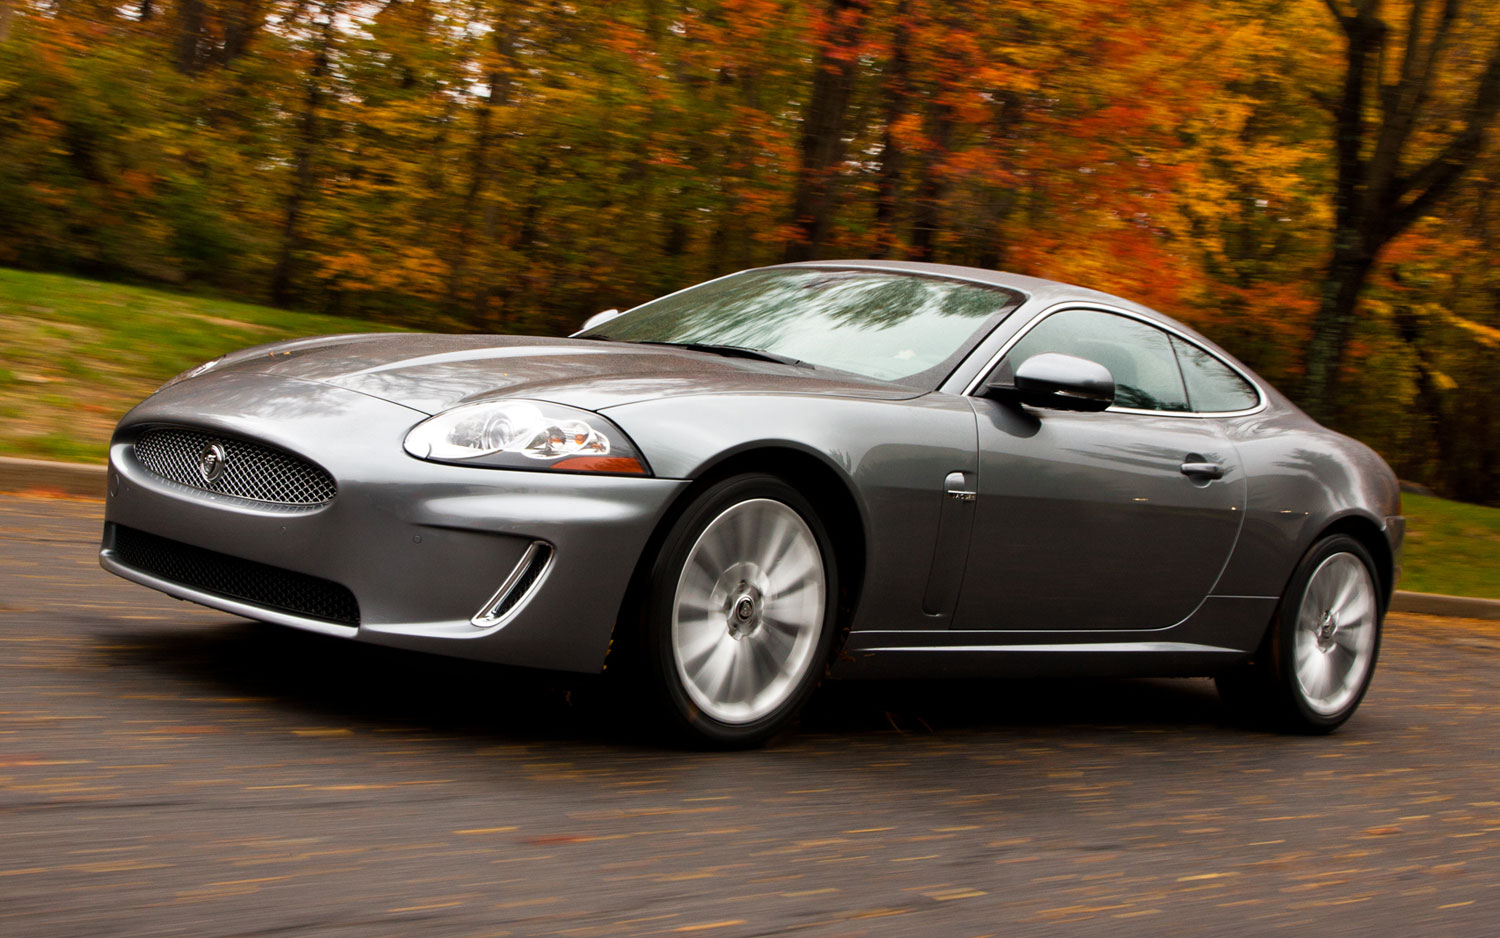 2010 Jaguar XK Coupe Road Test Review